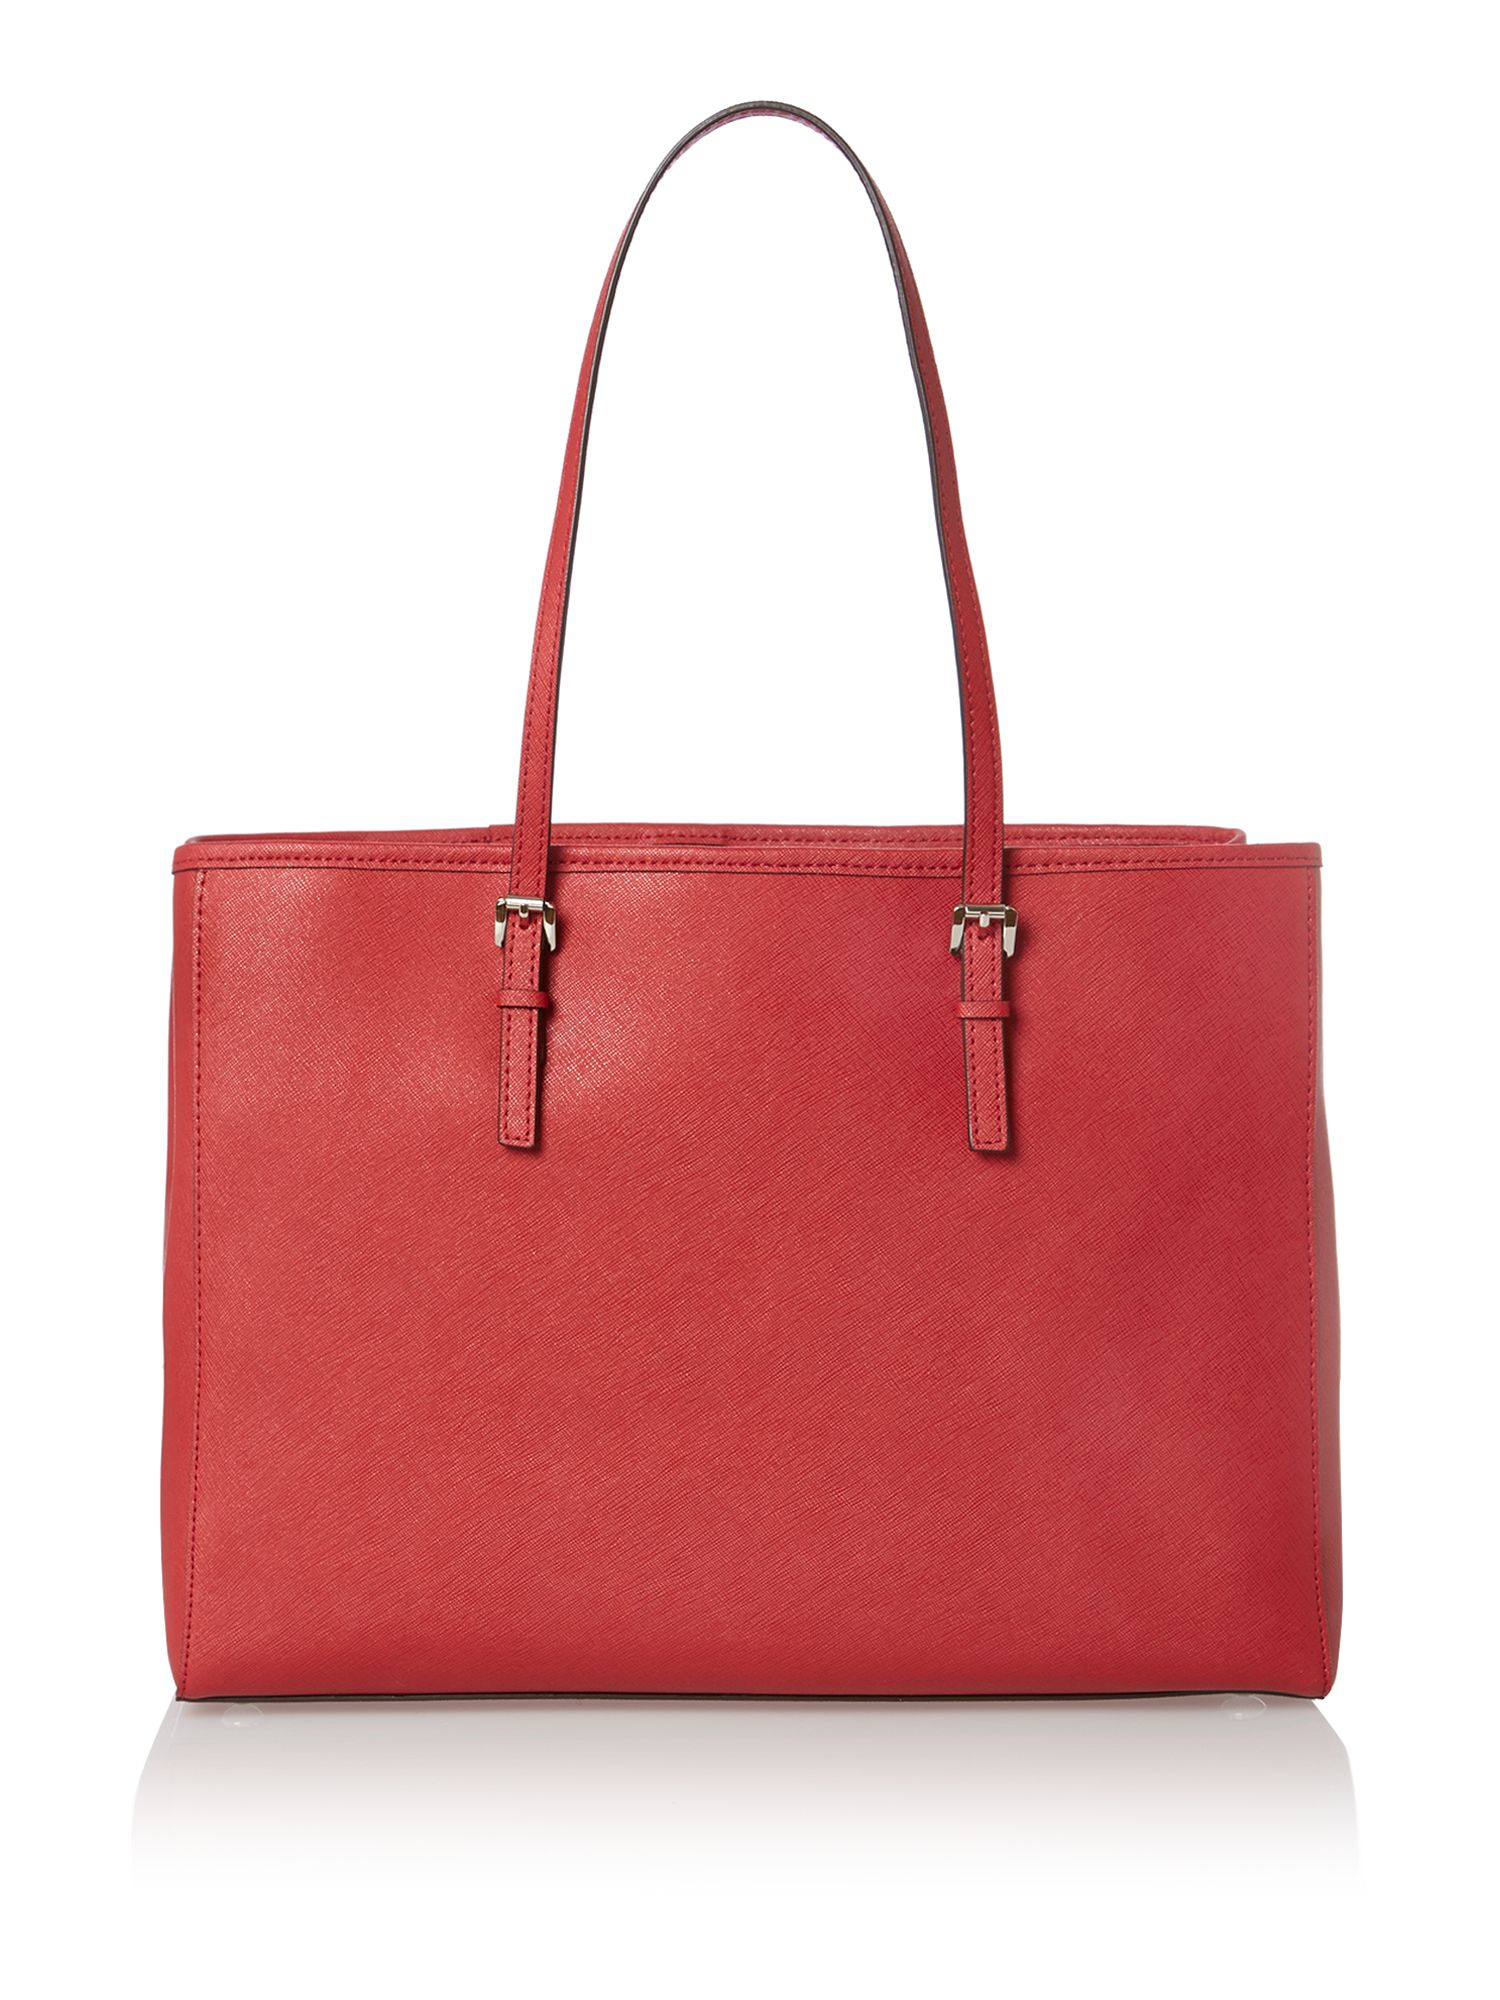 Jet Set Travel red medium tote bag